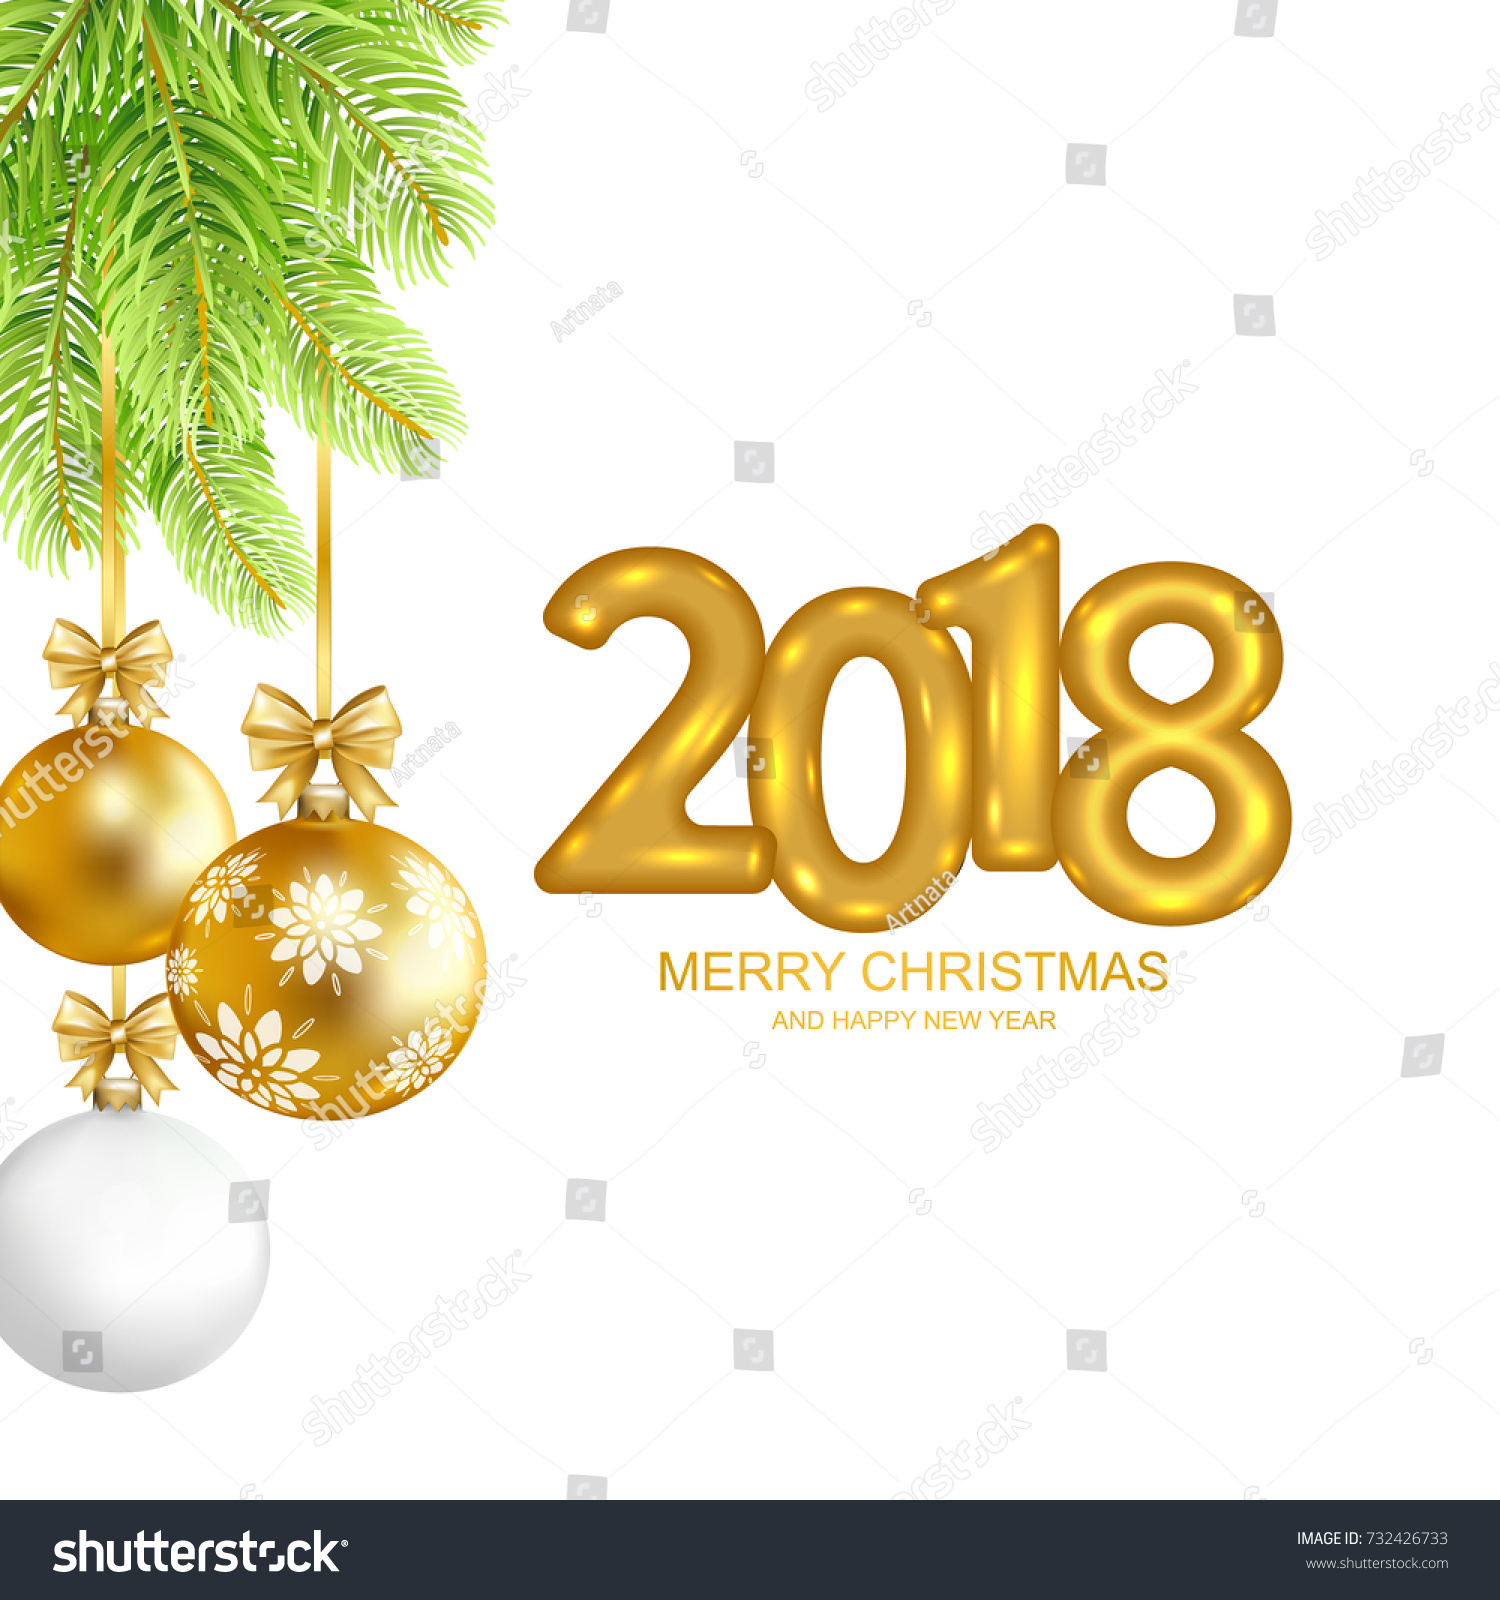 2018 Merry Christmas Happy New Year Stock Vector (Royalty Free ...